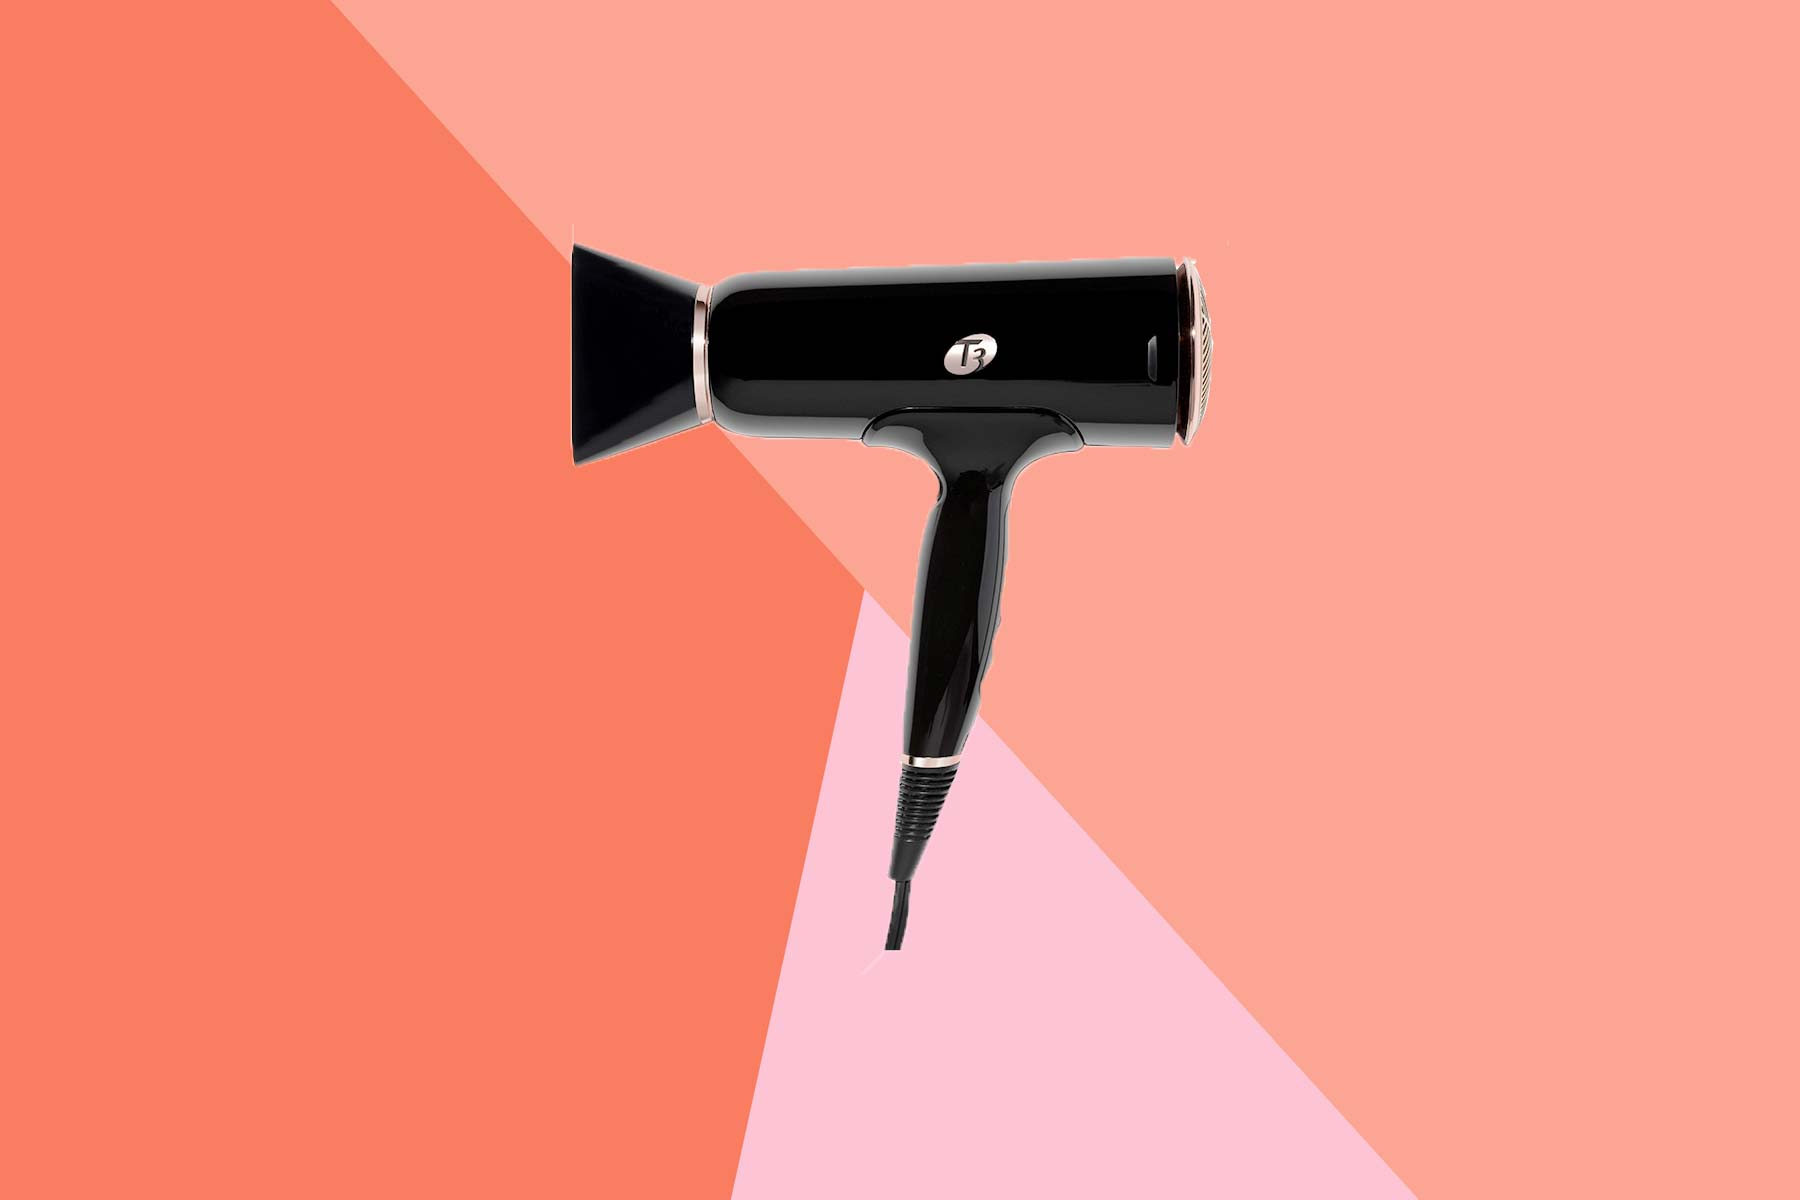 We Tested 45 Hot Styling Tools for Your Hair—These Are the Best